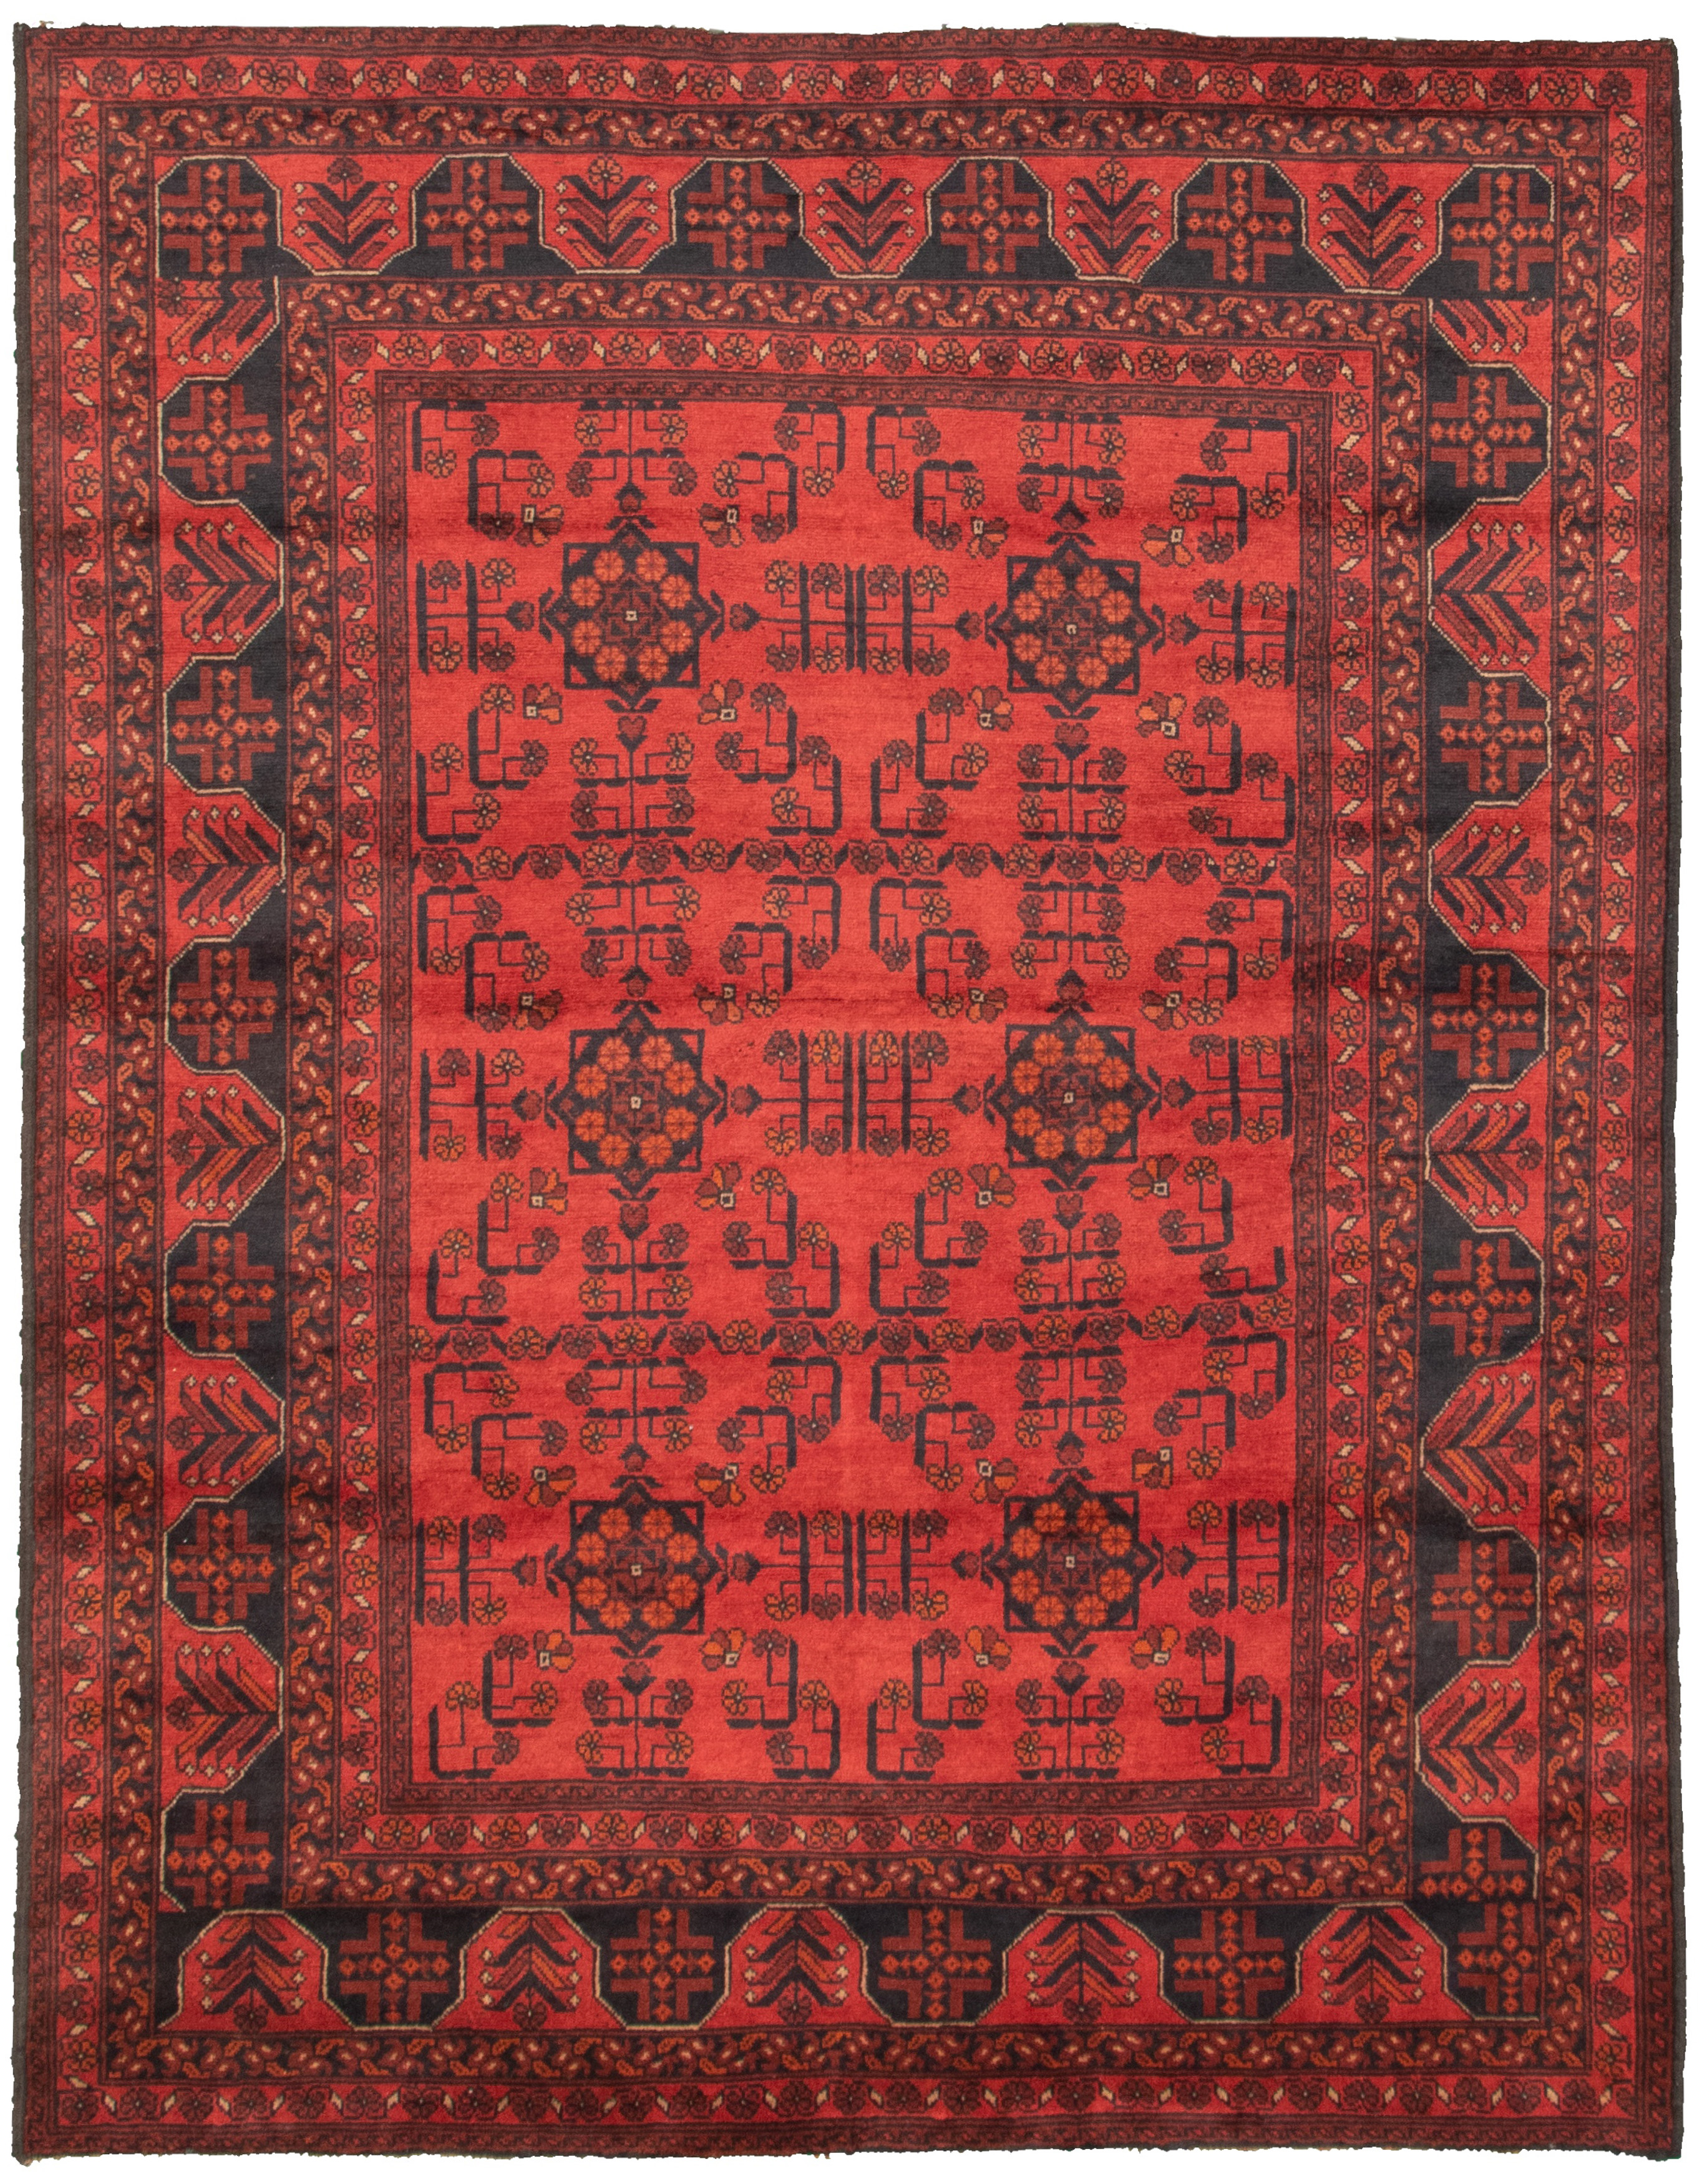 """Hand-knotted Finest Khal Mohammadi Red  Rug 5'8"""" x 7'6""""  Size: 5'8"""" x 7'6"""""""